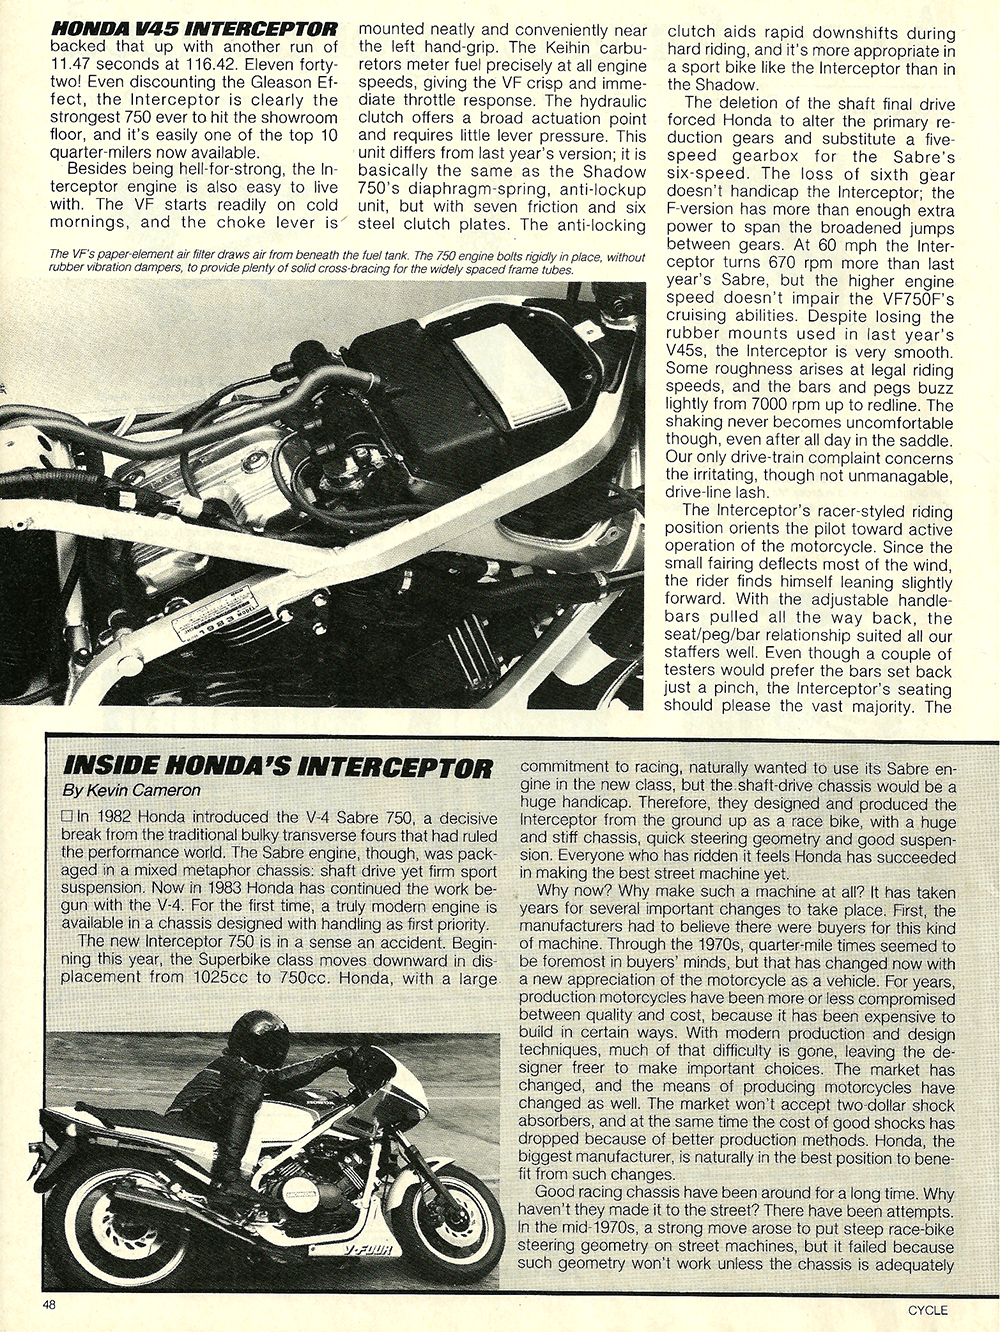 1983 Honda V45 Interceptor road test 08.jpg